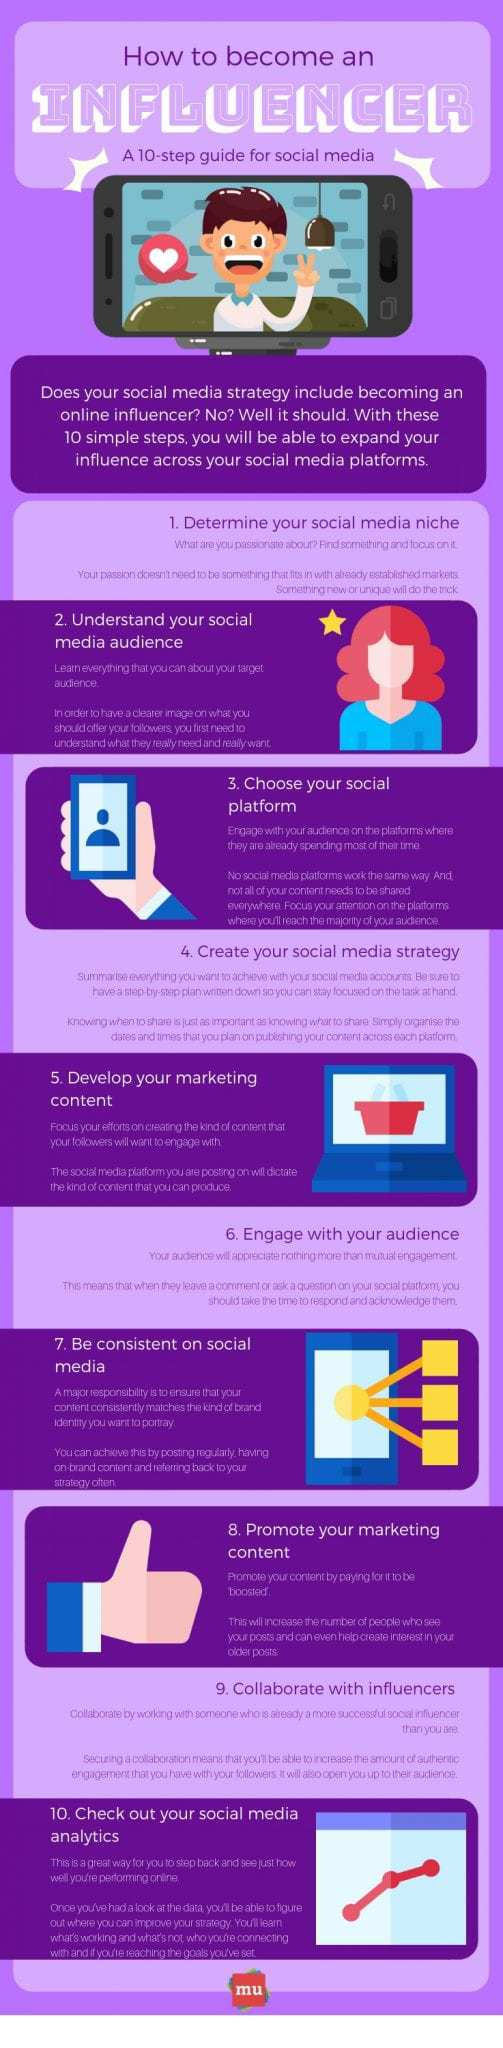 Learn how to become a social media influencer and actually monetize your online presence through this strategy, content, and distribution advice. Get more tips and how-to guide on becoming an influencer (and make money out of it), check out this great infographic.